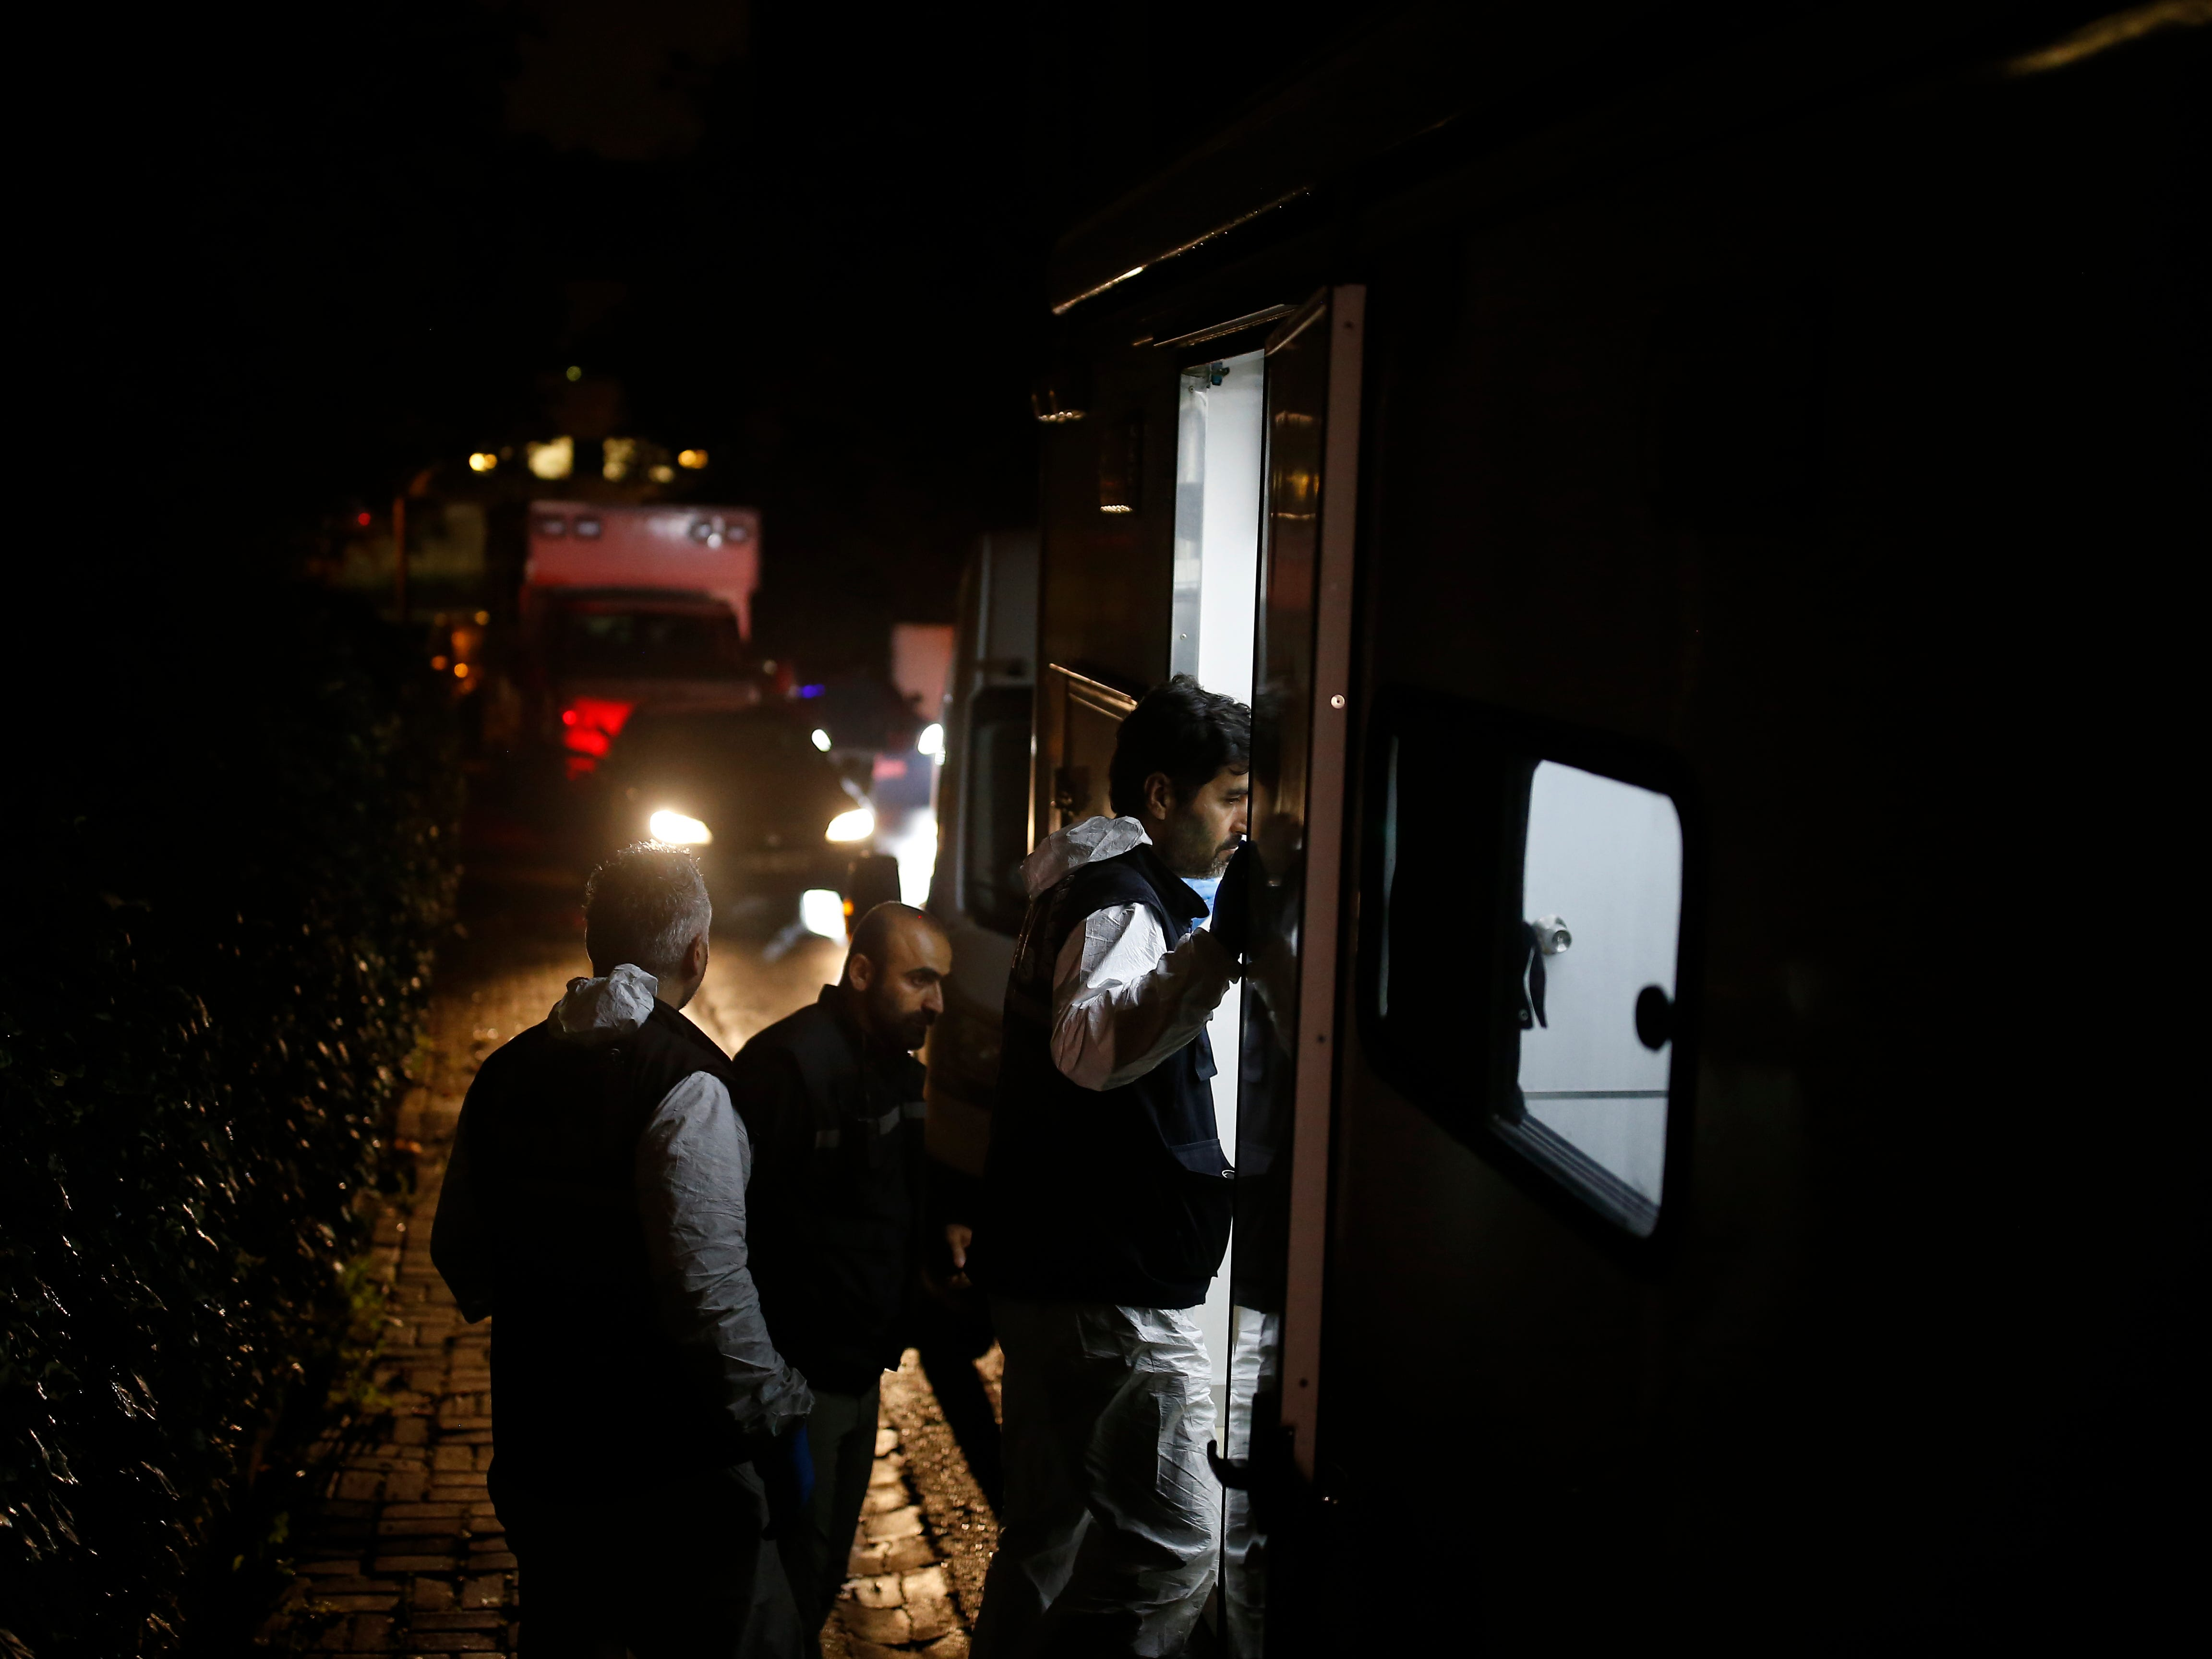 Turkish forensic officers arrive at the Saudi consulate to conduct a new search over the disappearance and alleged slaying of writer Jamal Khashoggi, in Istanbul, early Thursday, Oct. 18, 2018. Pro-government newspaper Yeni Safak on Wednesday said it had obtained audio recordings of the alleged killing of Saudi writer Khashoggi inside the consulate on Oct. 2.